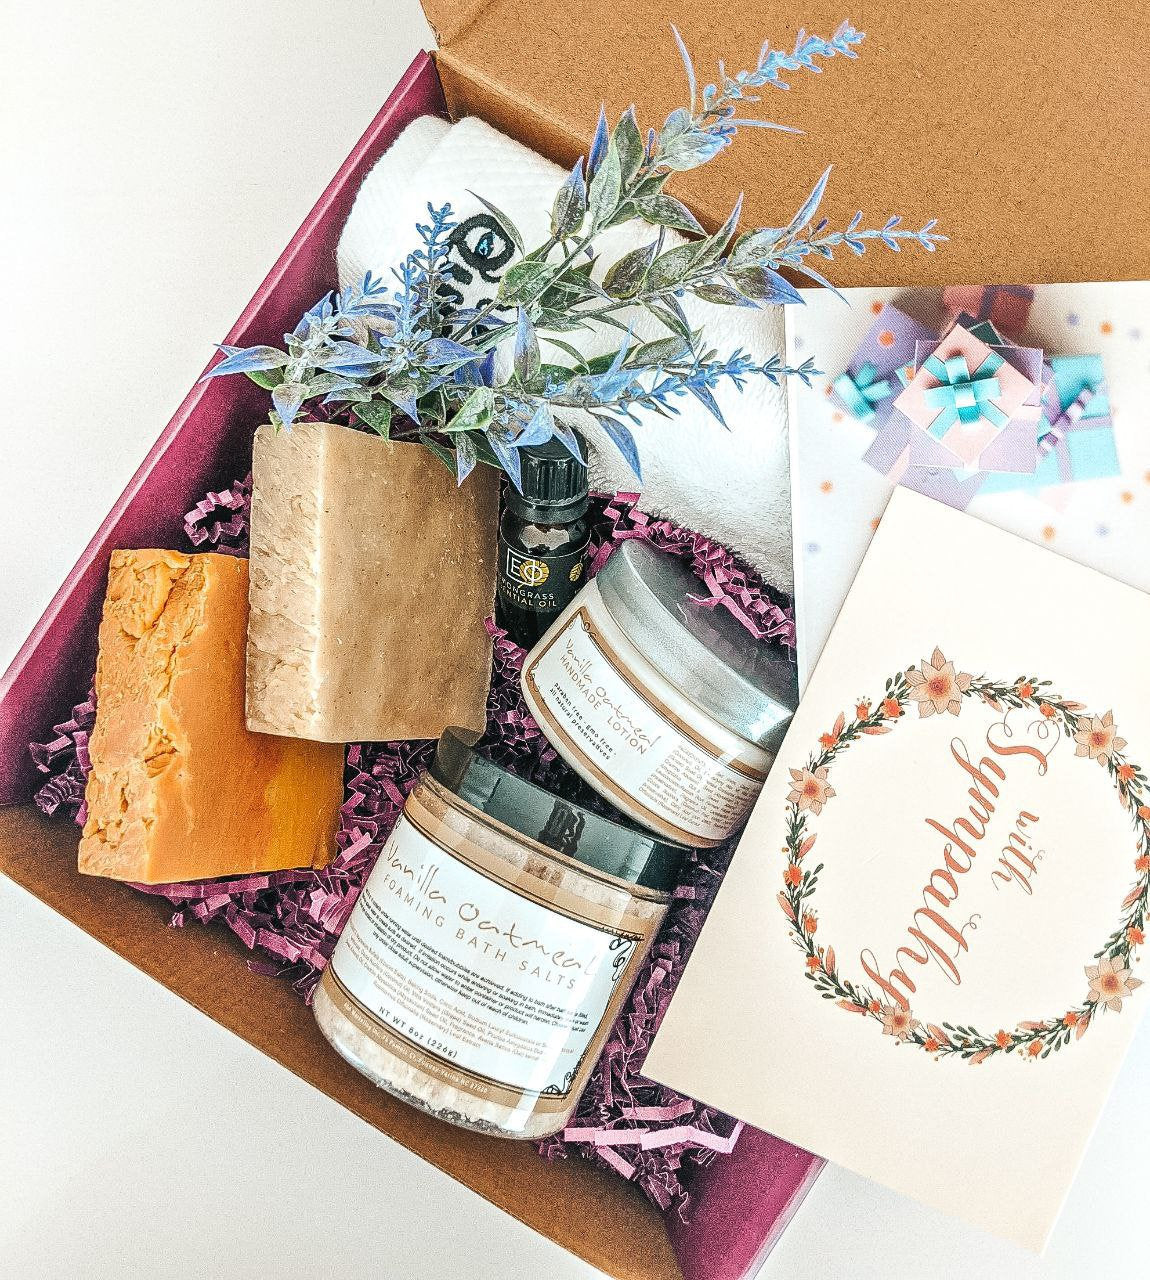 Gift for Mom, Artisan Soap, Body Cream, Bath Salts, Birthday Gift Box, Spa Gift Set, Gift for Mom Gift Box, Aromatherapy